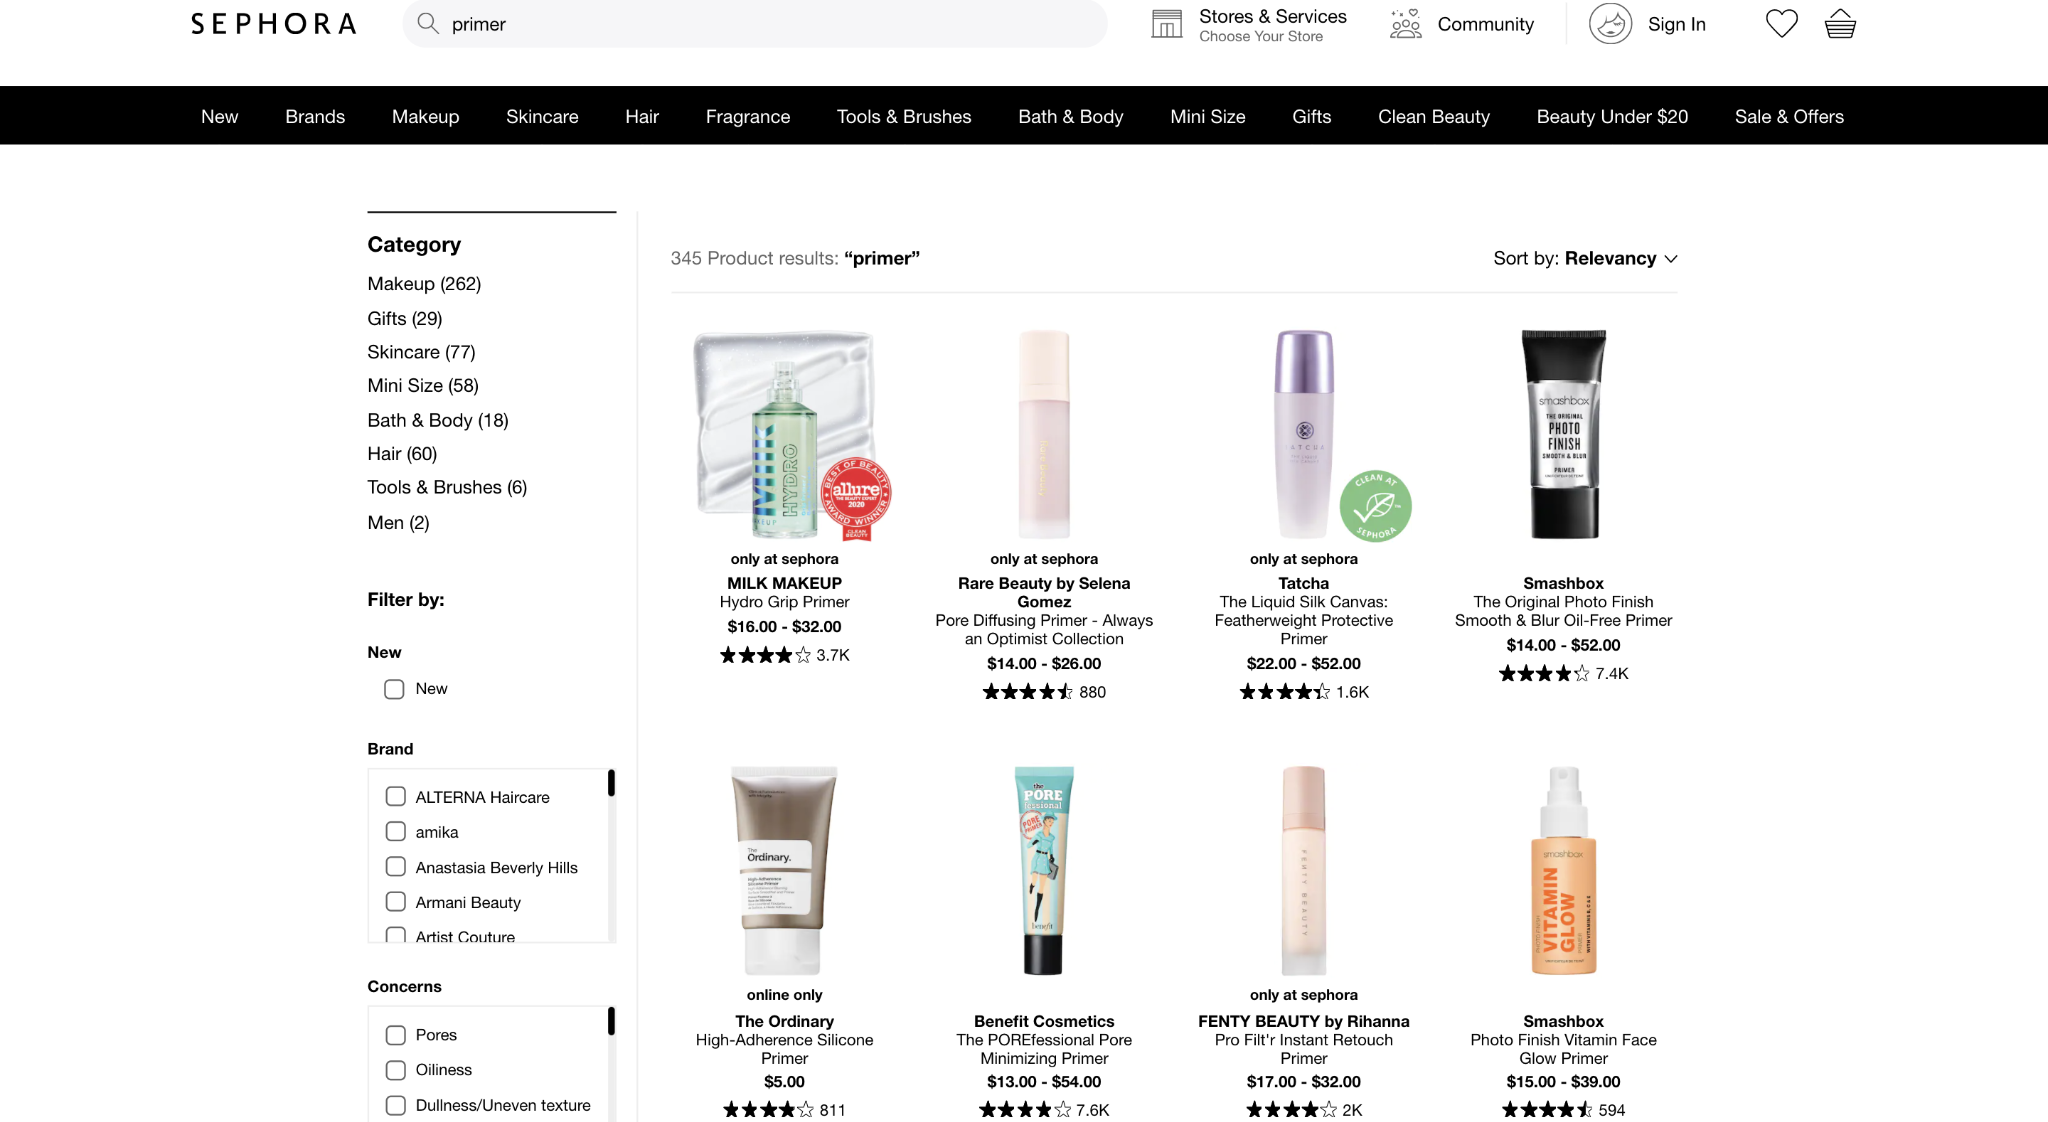 Example of customer ratings on site search page by Sephora